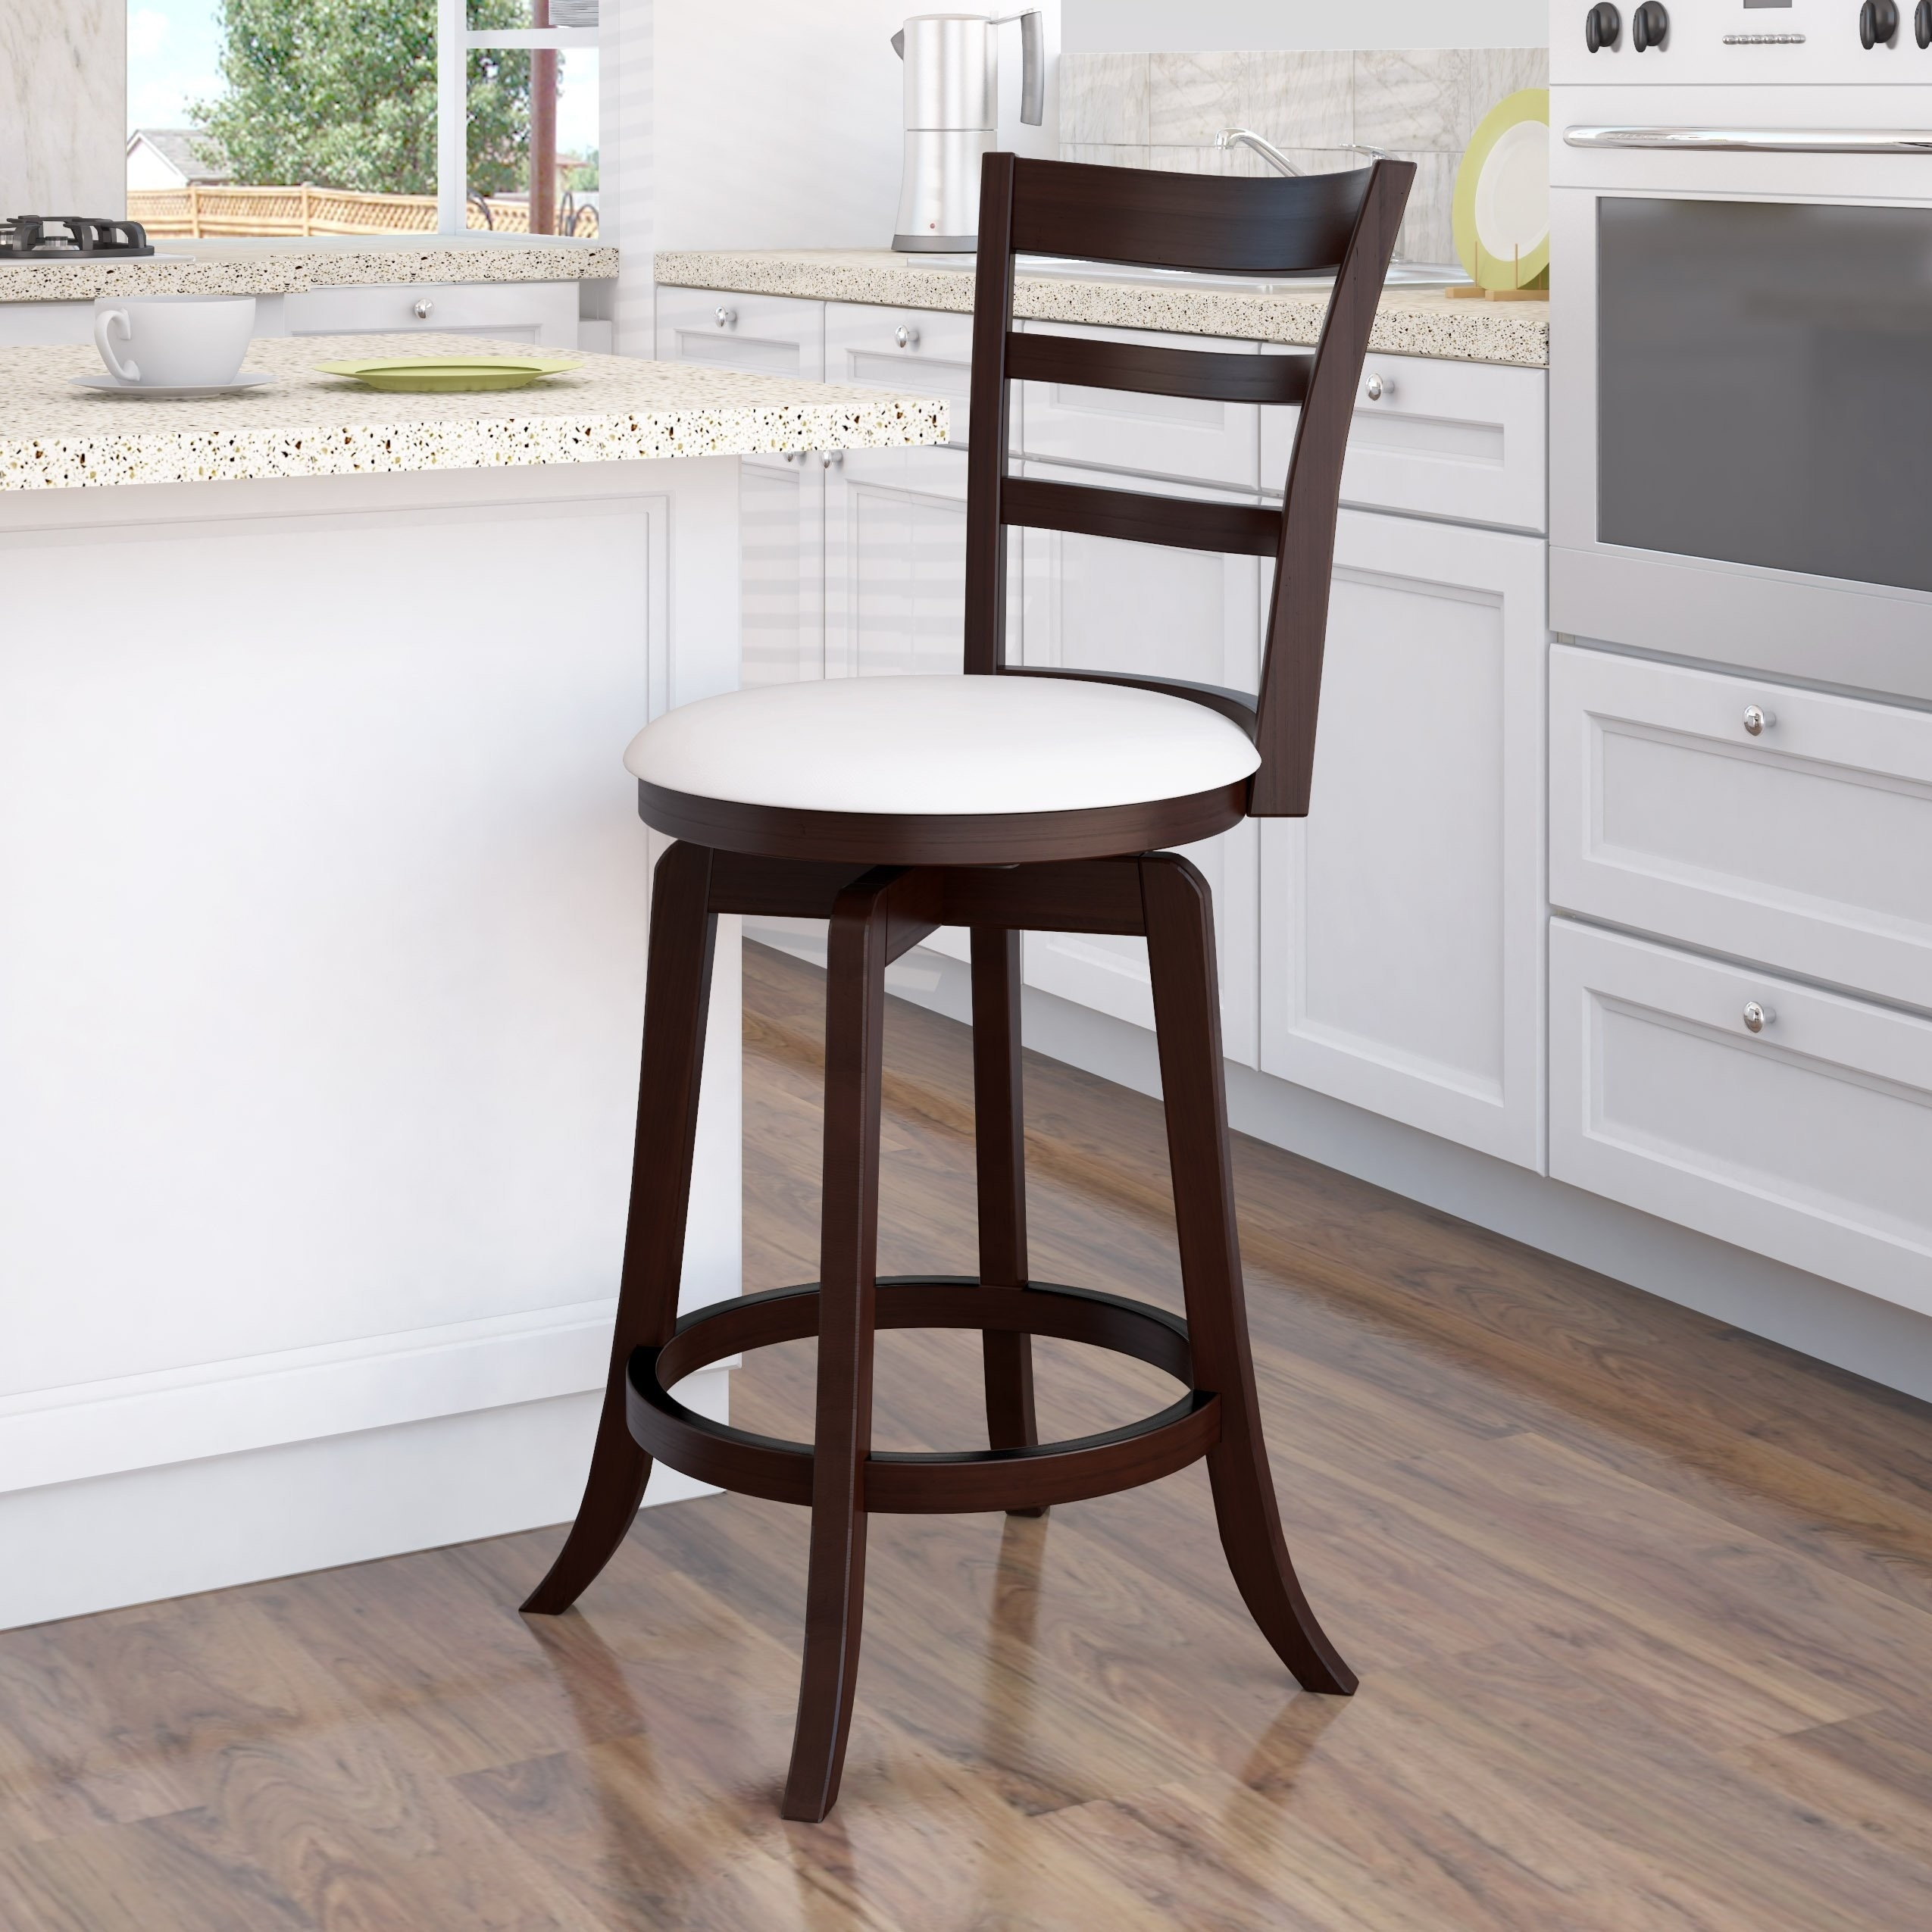 Picture of: Bar Stools 36 Inch Seat Height Ideas On Foter